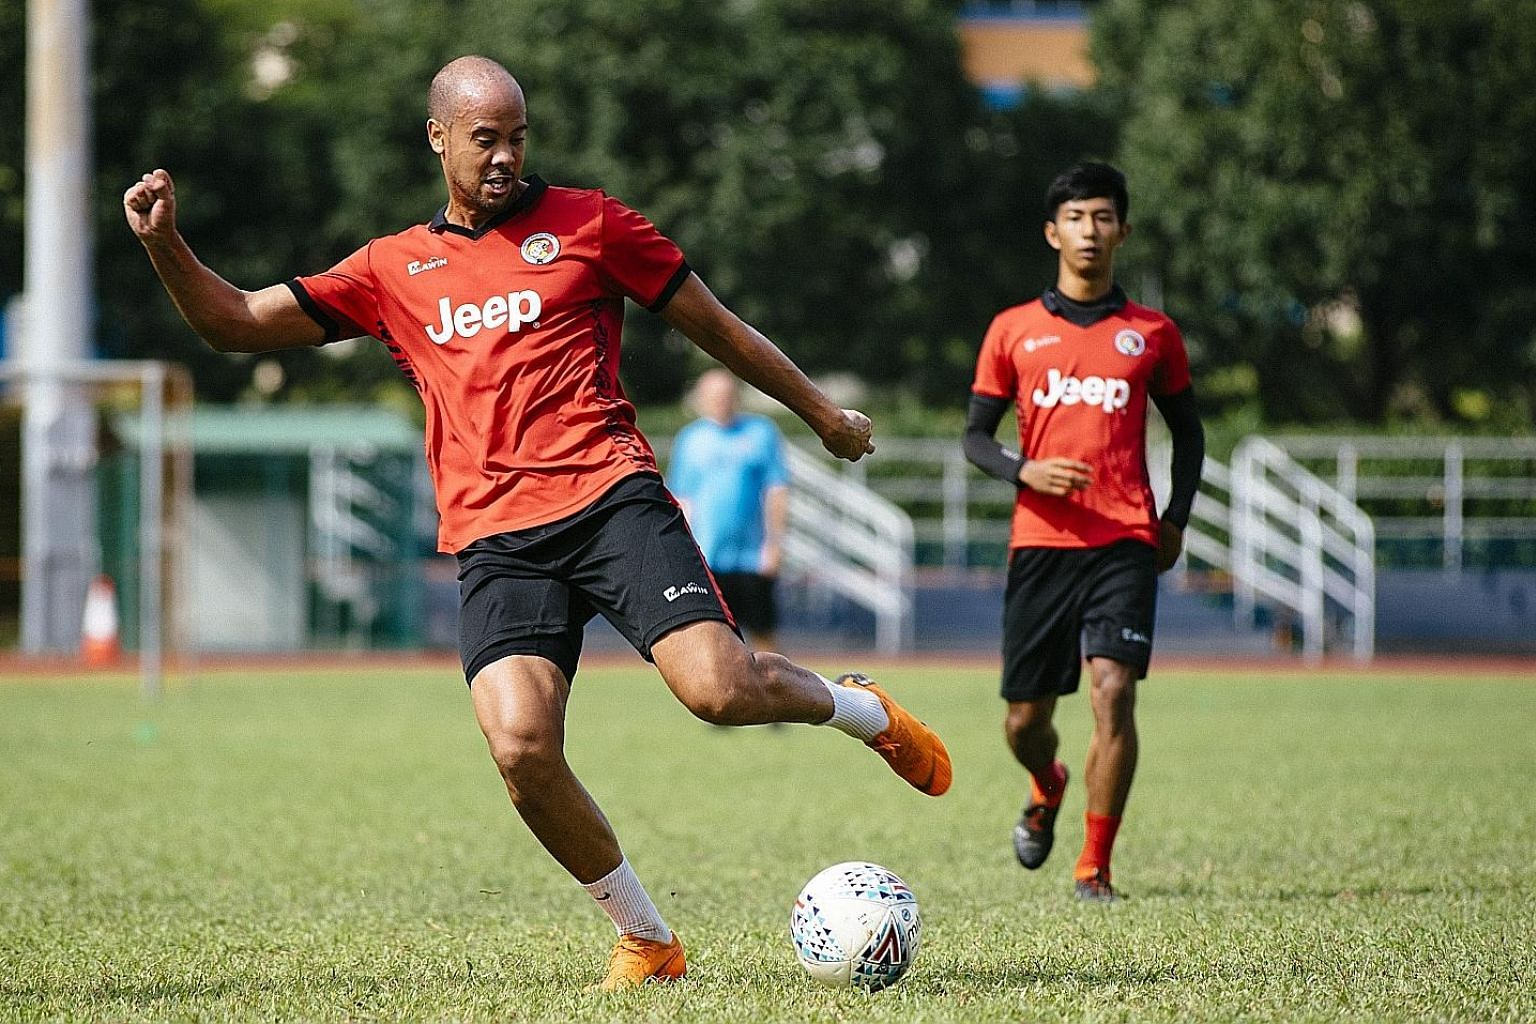 Balestier Khalsa striker Keegan Linderboom training at Toa Payoh Stadium. He has netted thrice in five games and the team are sitting pretty in third place in the standings.